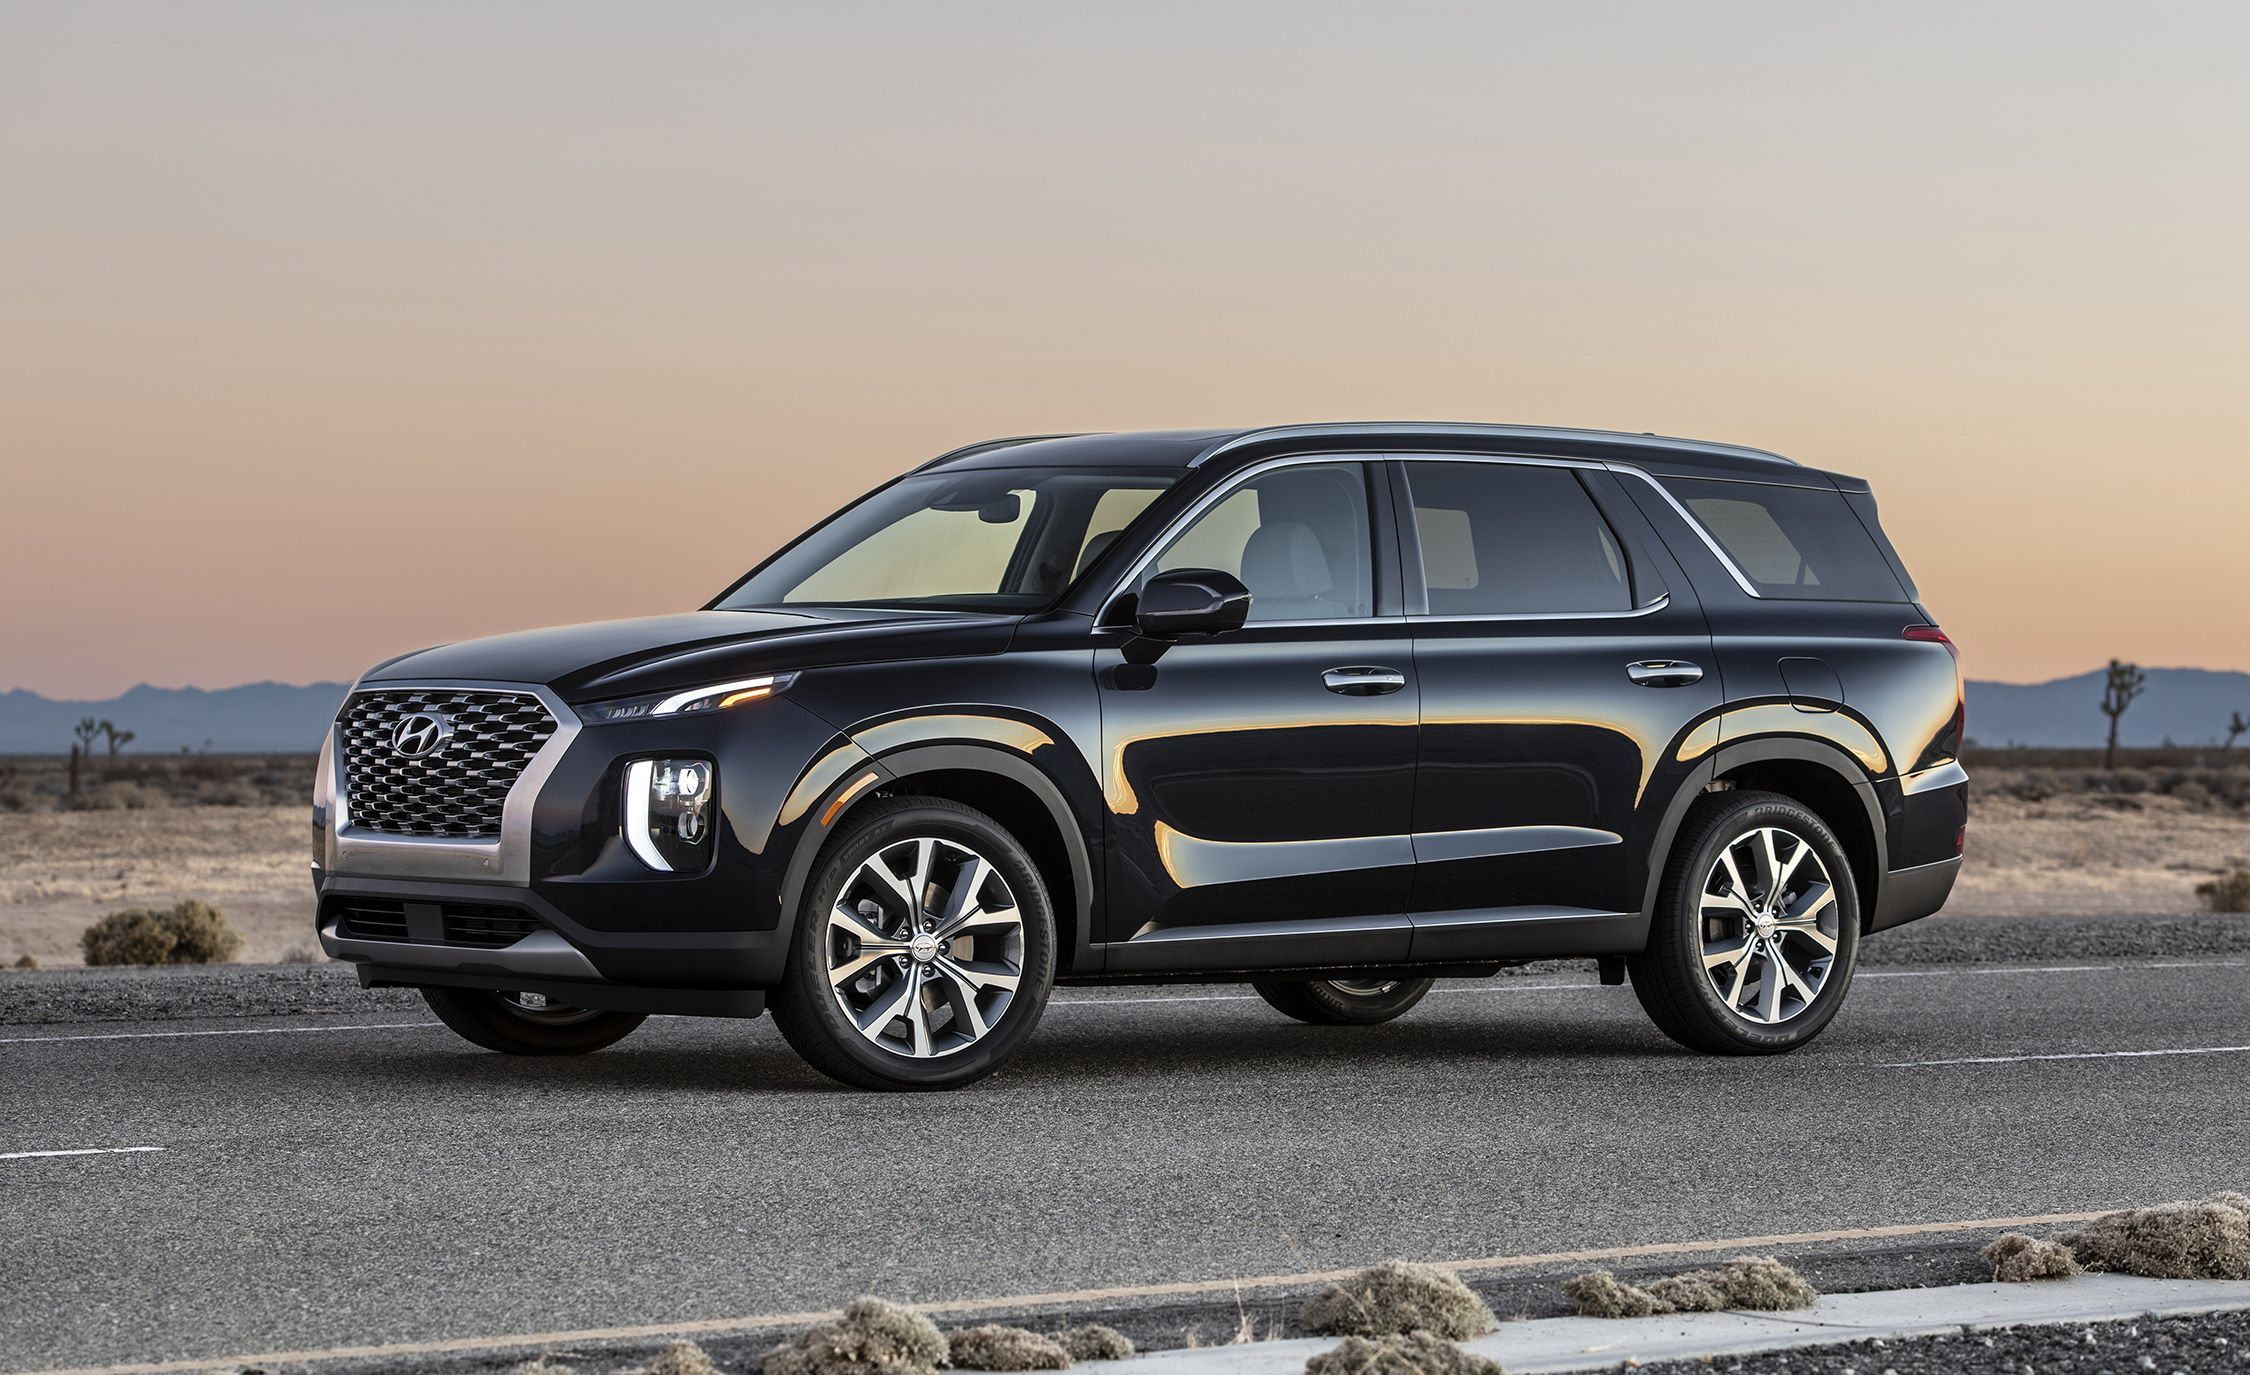 Comments on: The 2020 Hyundai Palisade Is a Properly Big